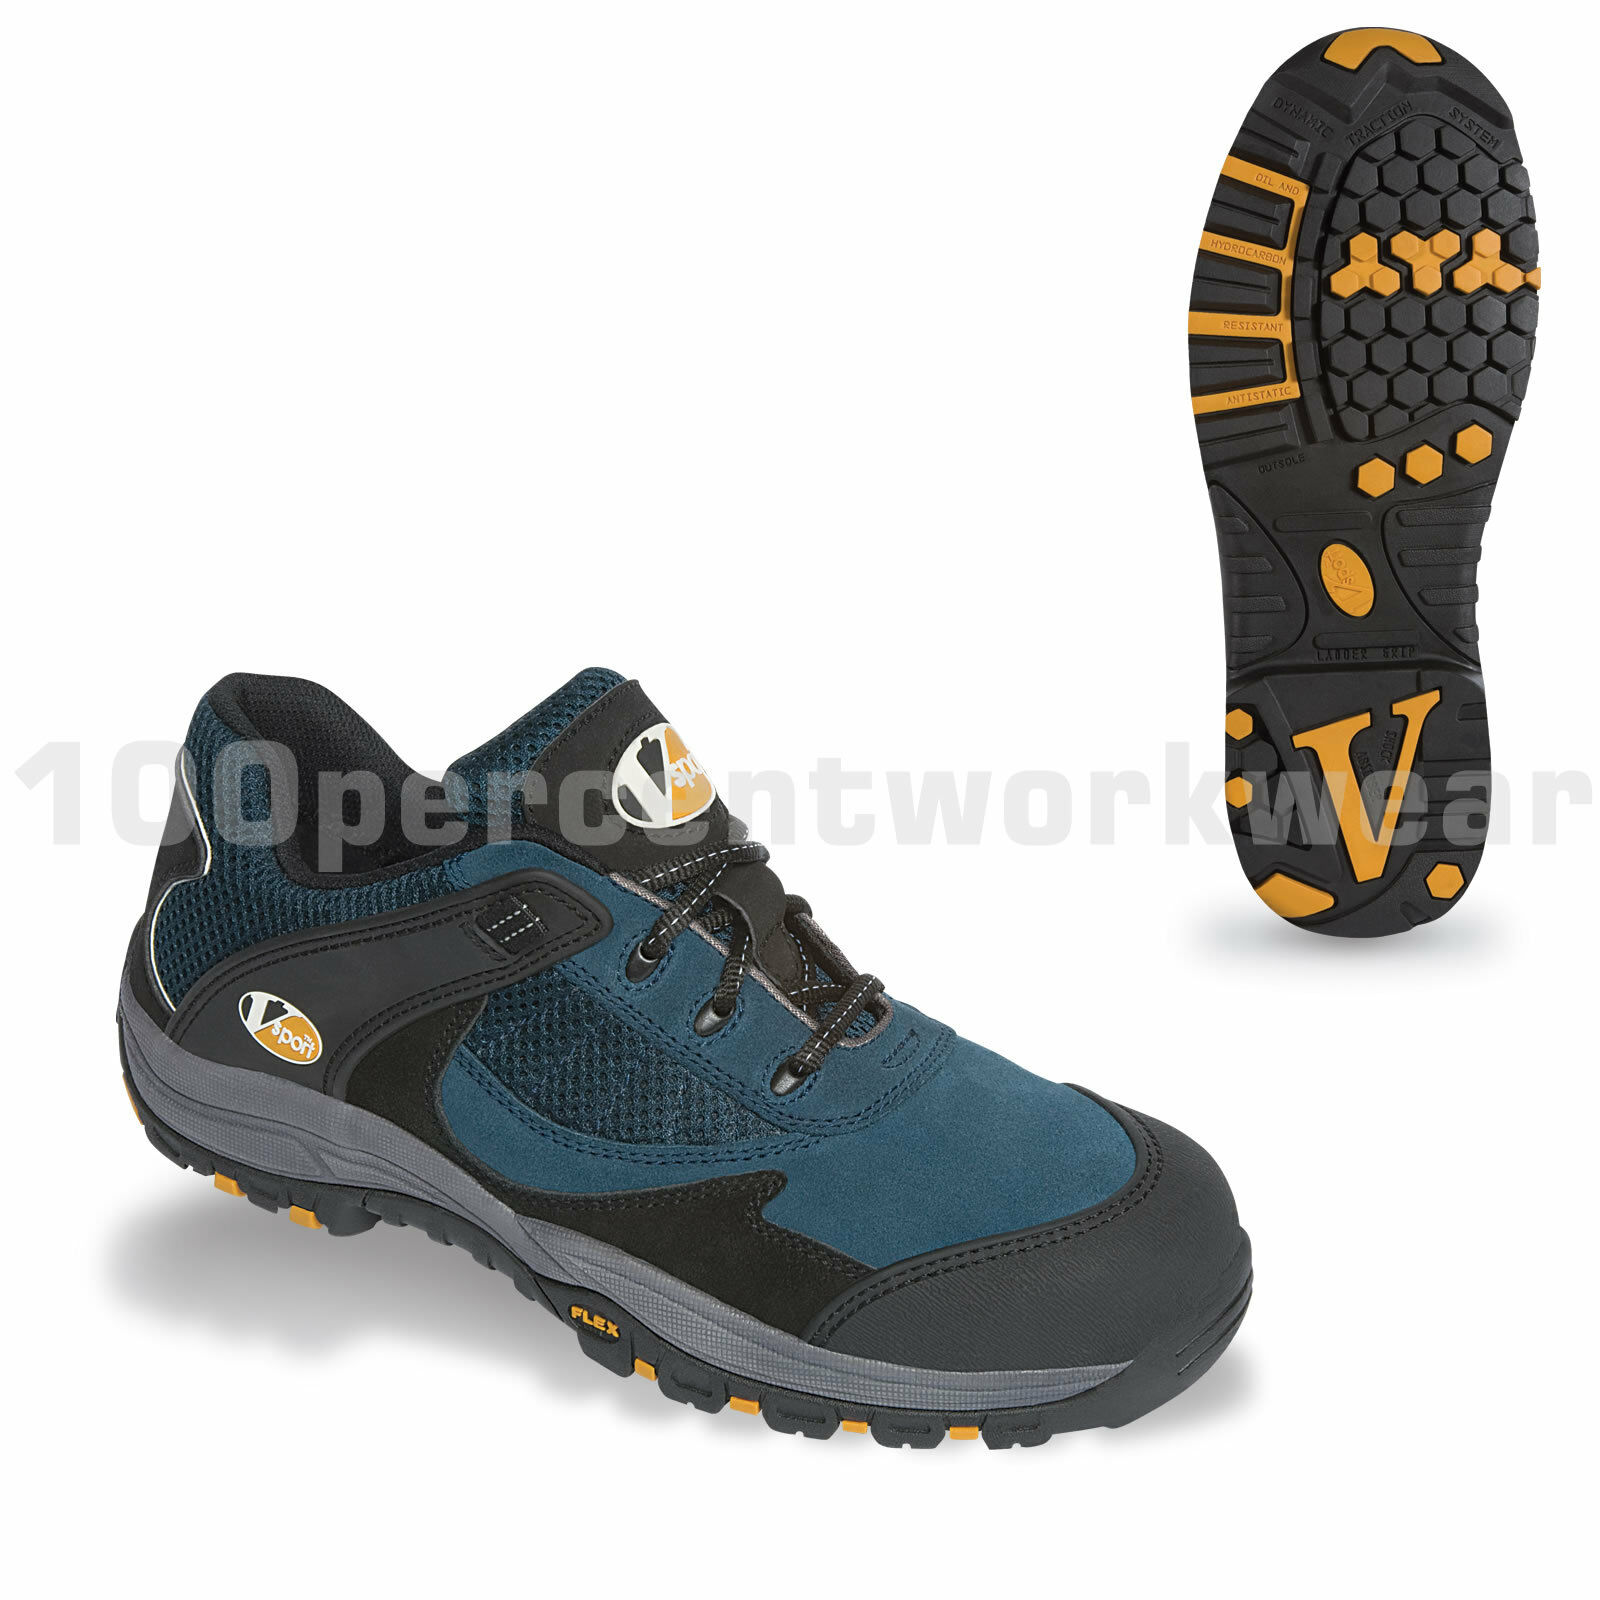 V12 Vtech Safety VS400 PITSTOP Work Trainers Schuhes Blau Free Suede Toe Cap Metal Free Blau 5a1e84